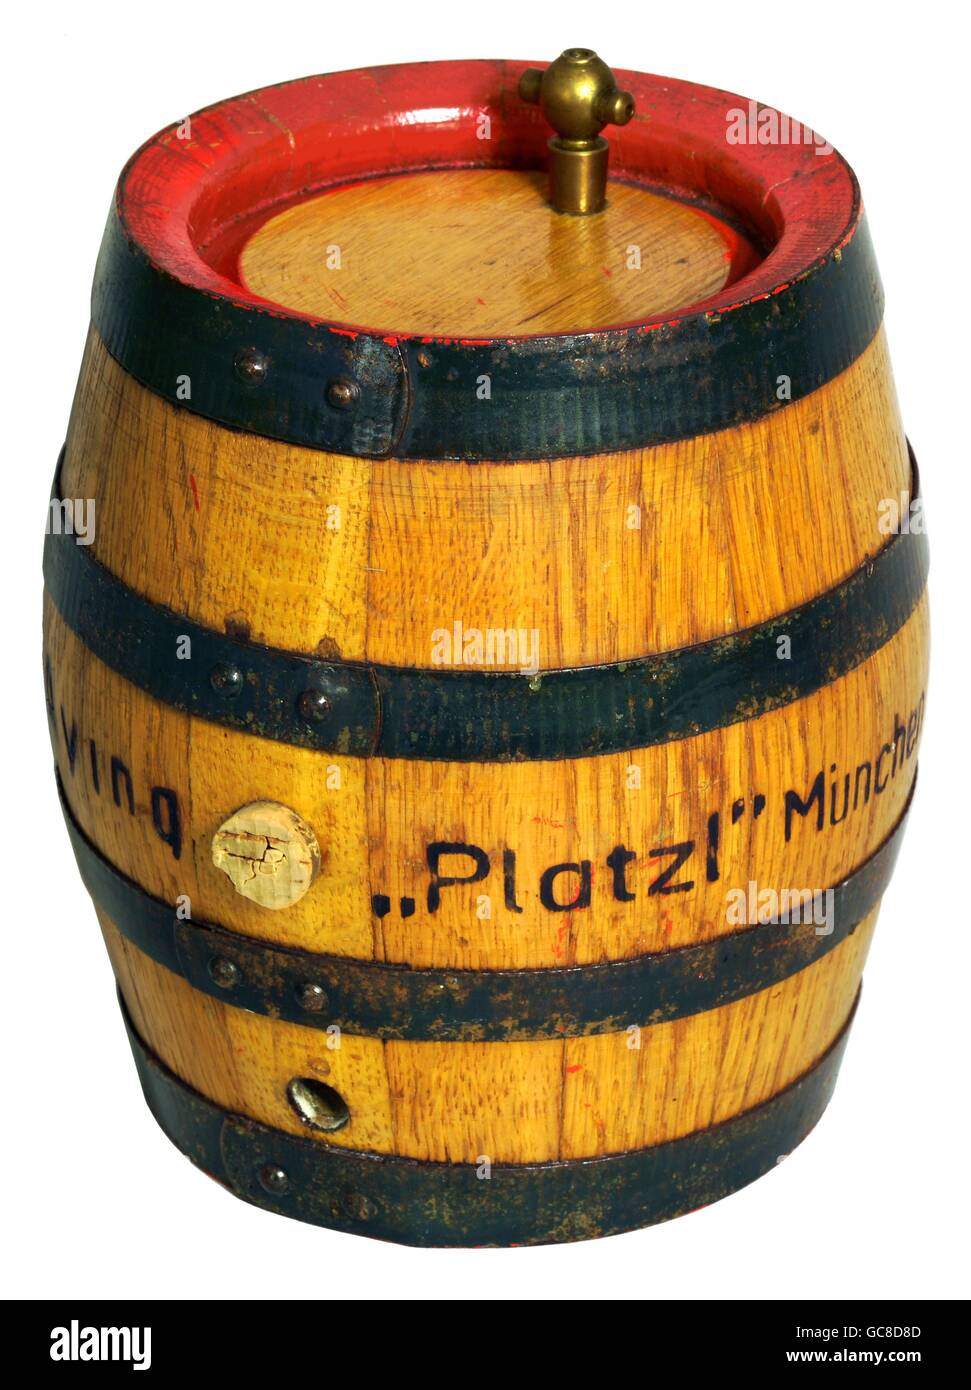 alcohol, beer, small beer barrel, volume: 5 litre, from the Aying brewery for The Platzl in Munich, Germany, circa - Stock Image